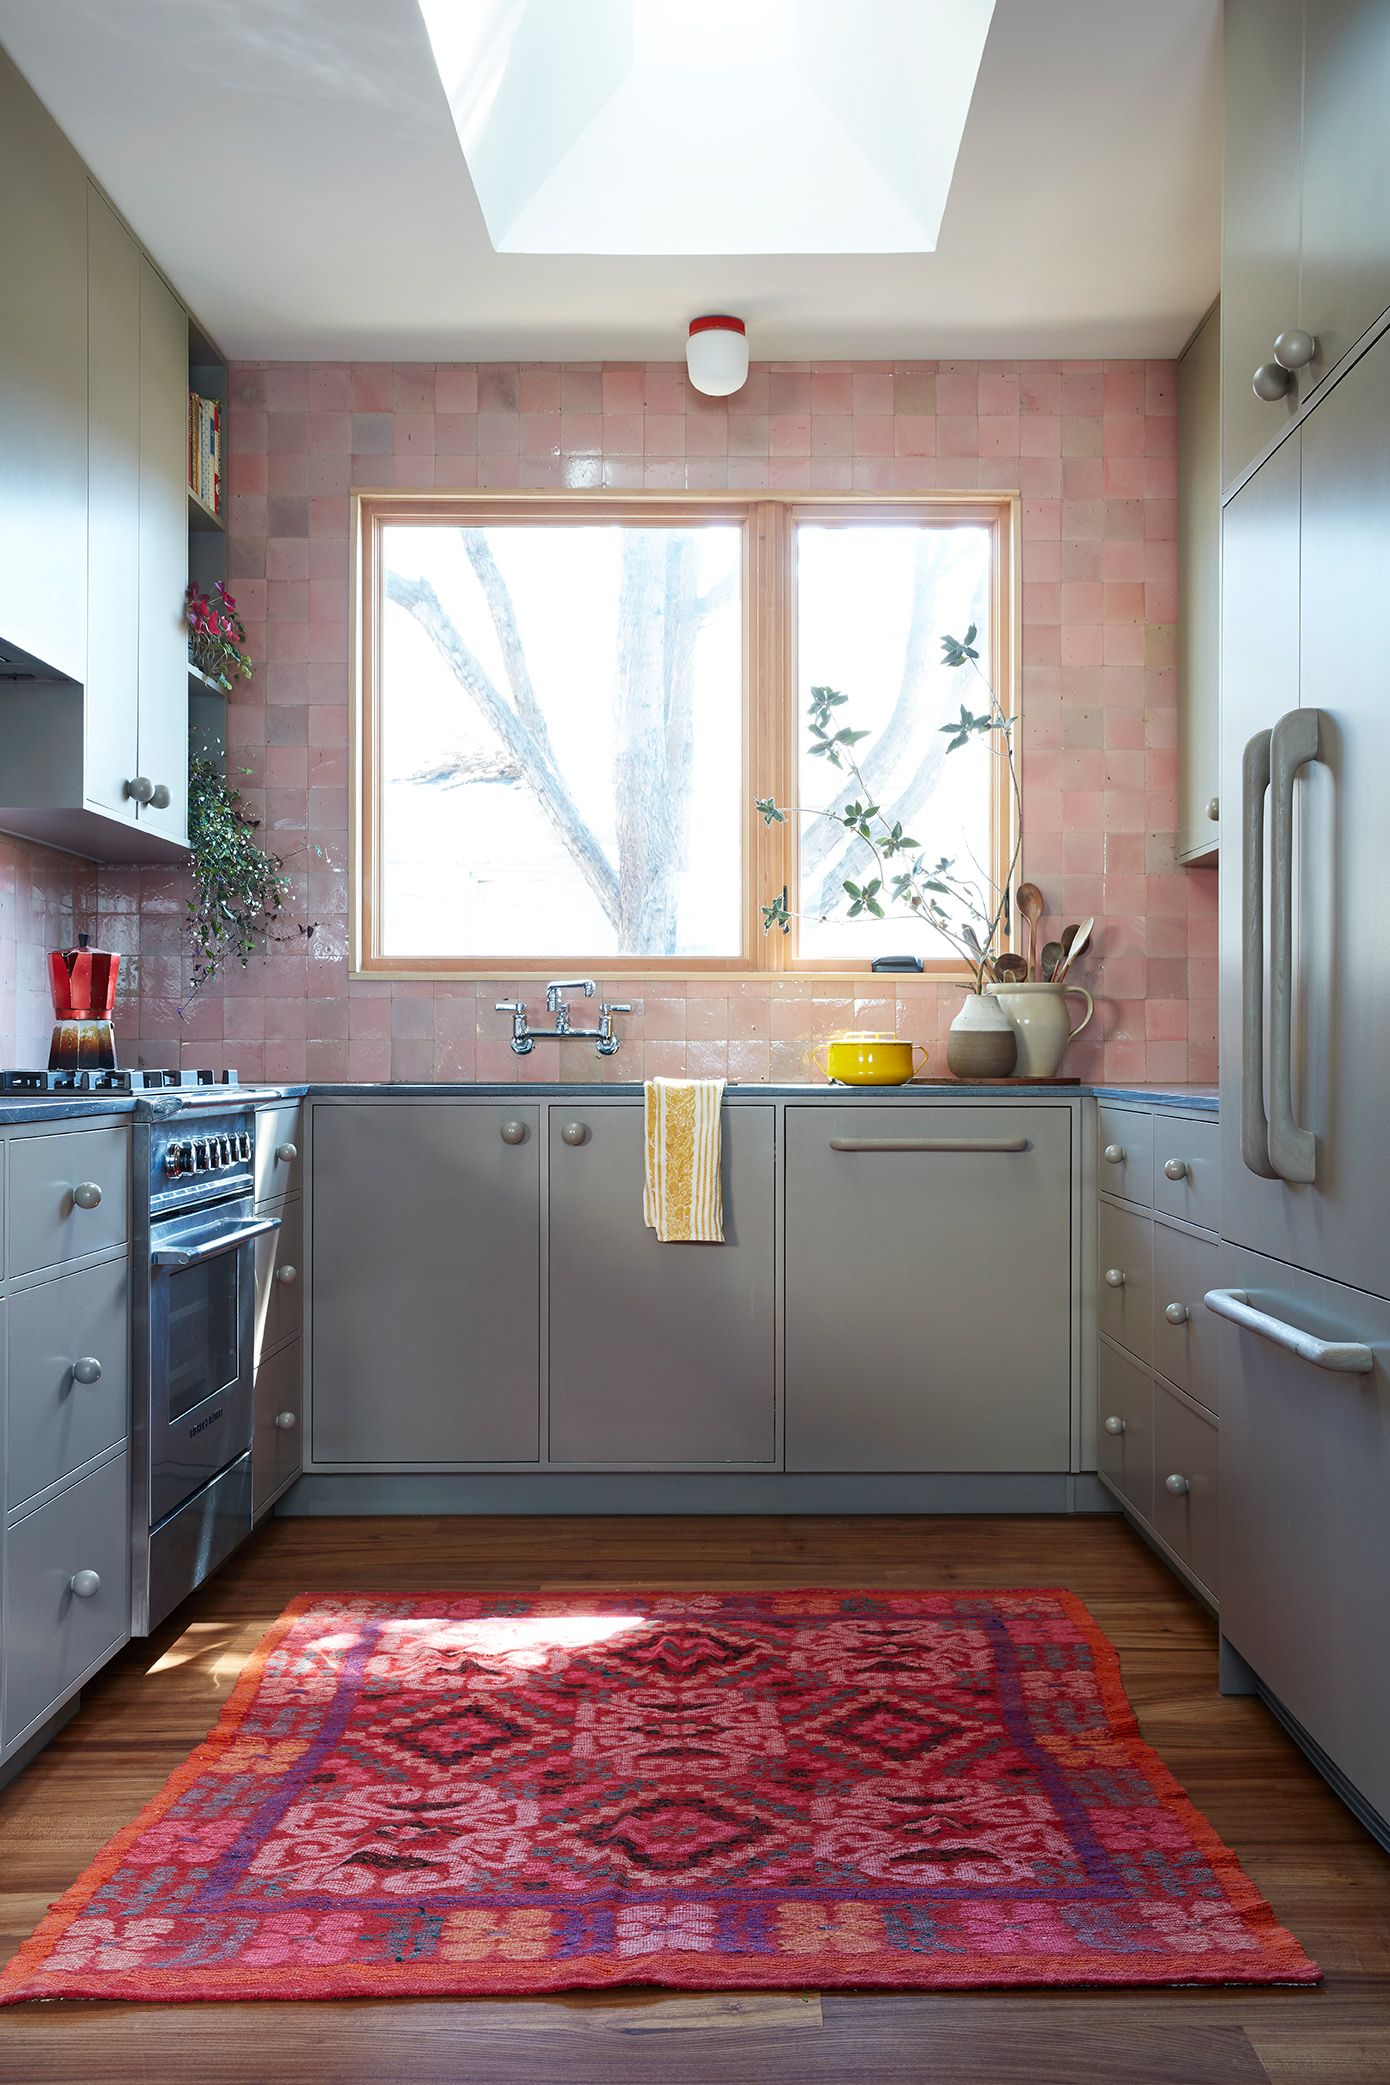 This San Francisco Couple S Home Renovation Came Together Thanks To Their Community Of Creatives Kitchen Cabinet Design Galley Kitchen Renovation Kitchen Design